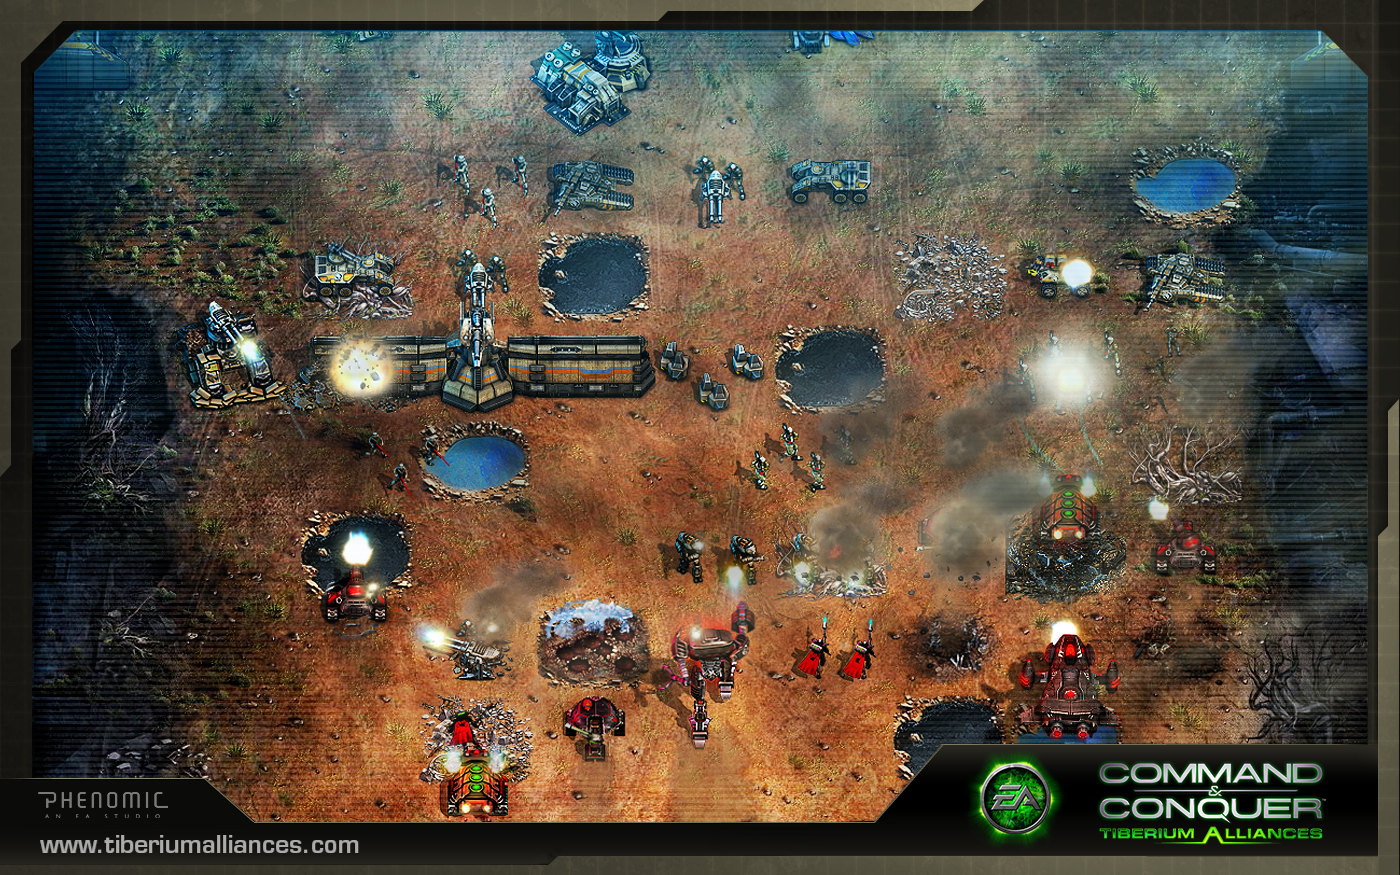 HQ Command & Conquer: Tiberium Alliances Wallpapers | File 485.97Kb